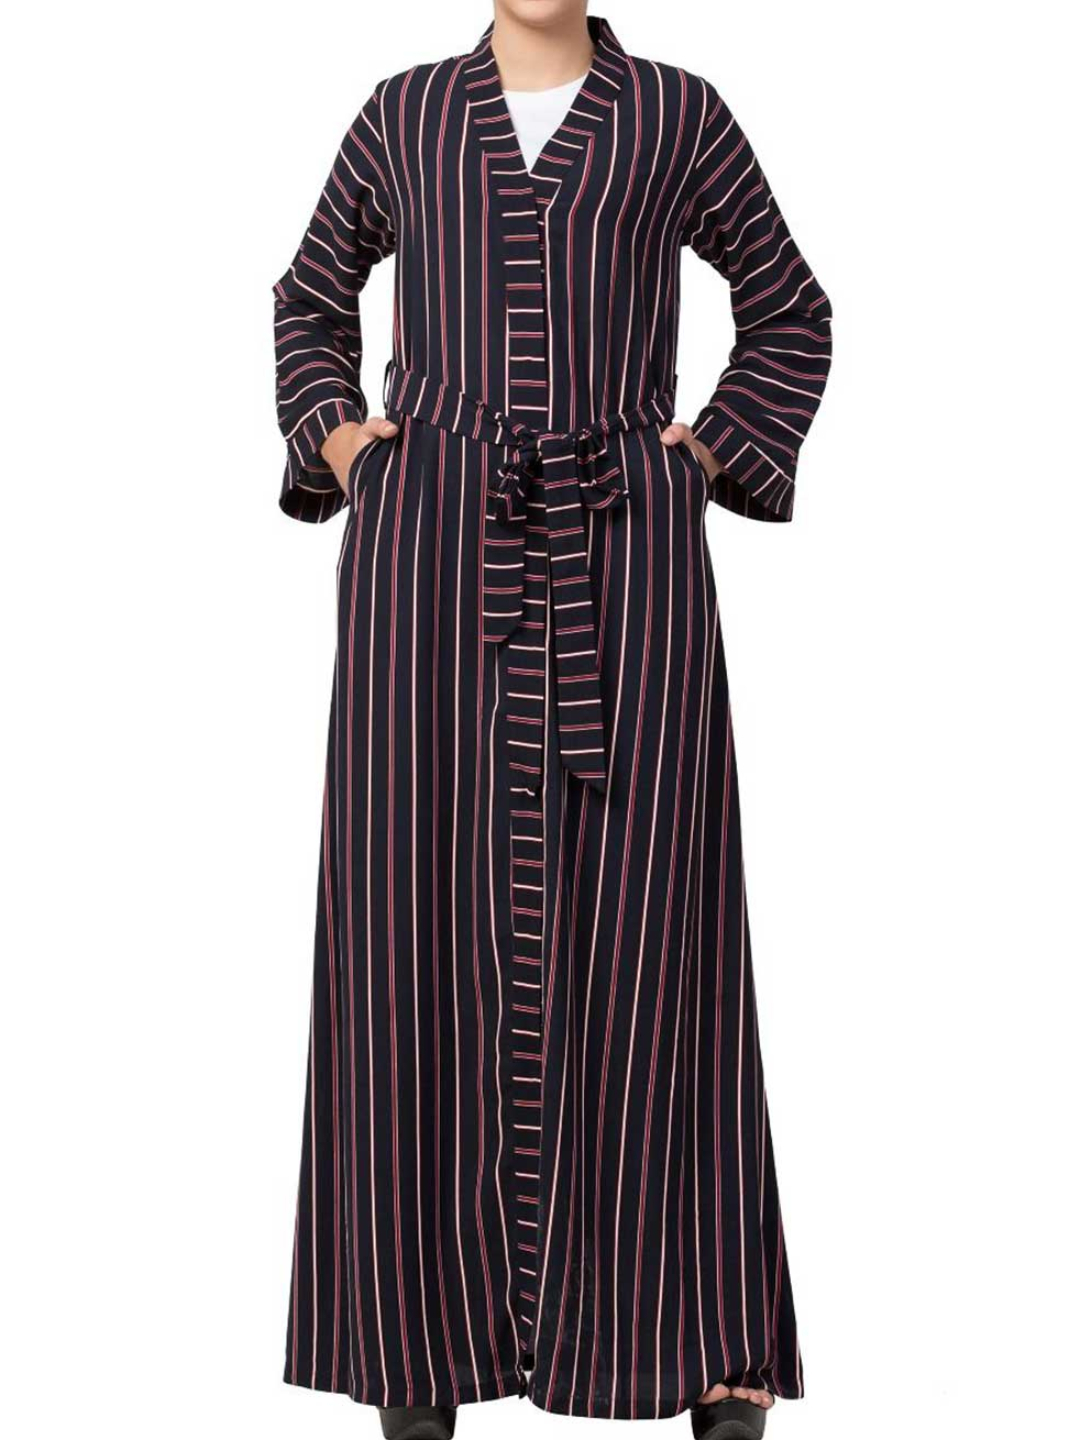 Moss Crepe Long Abaya With Stripes & Pockets and Belt In Multi Colour